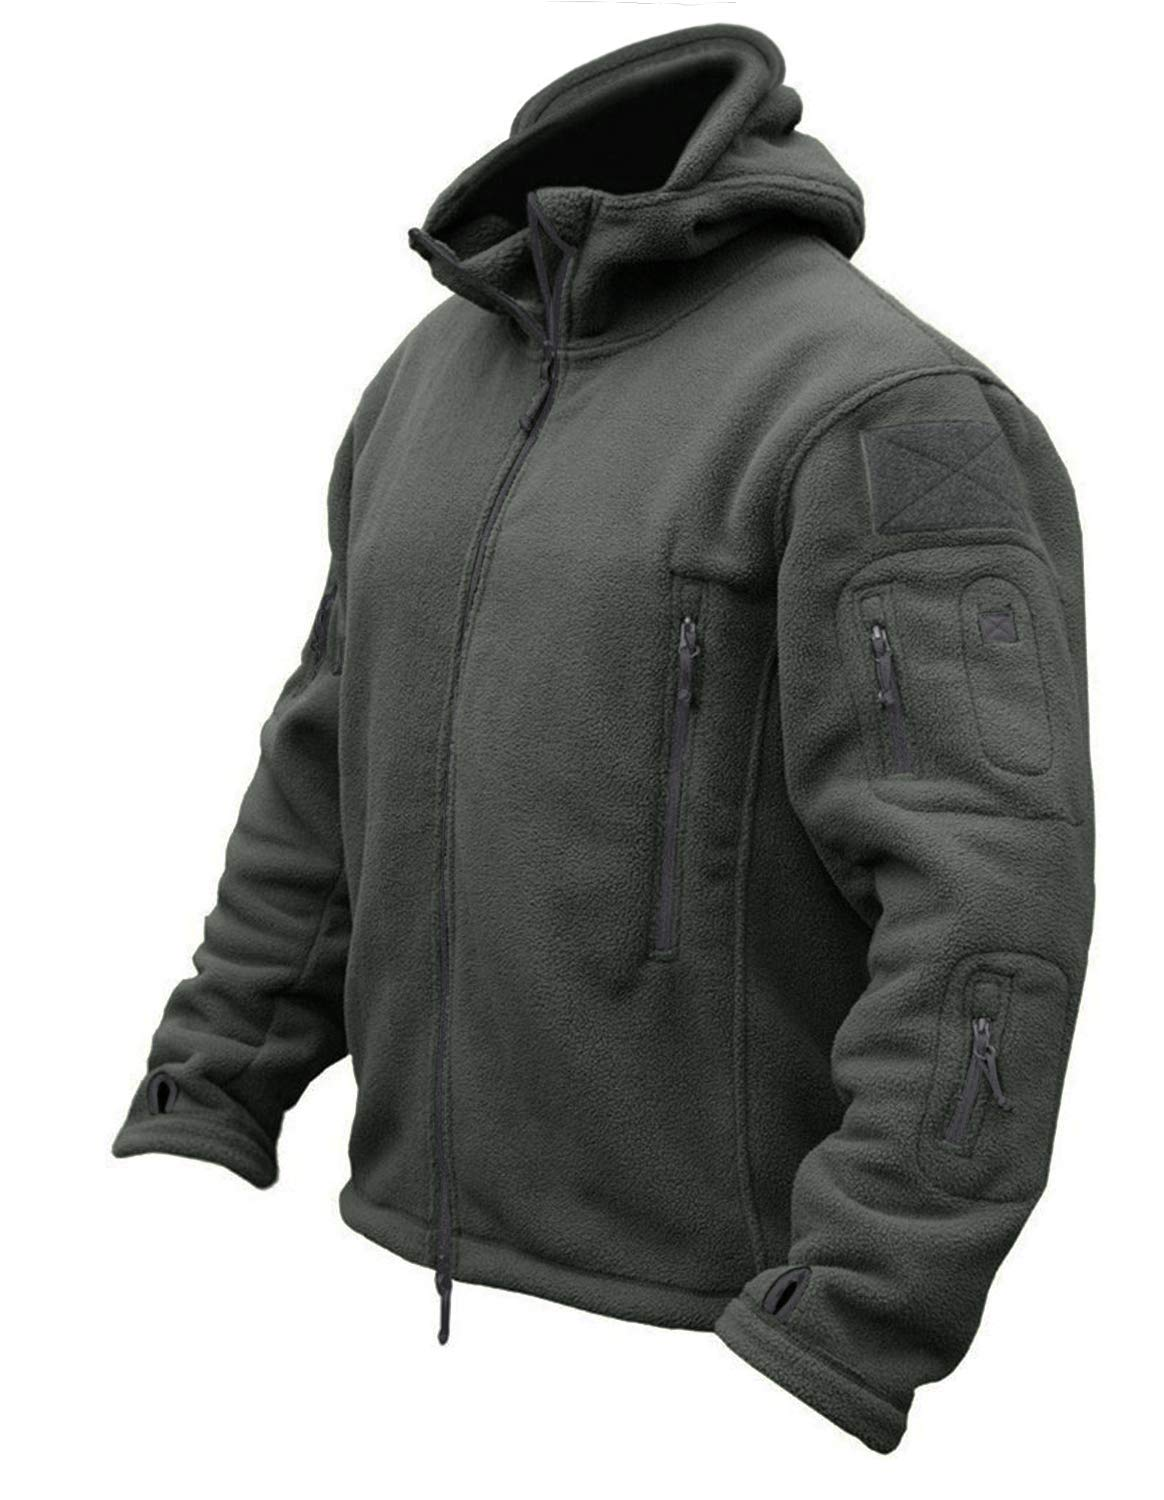 CRYSULLY Men's Winter Outdoor Stylish Classic